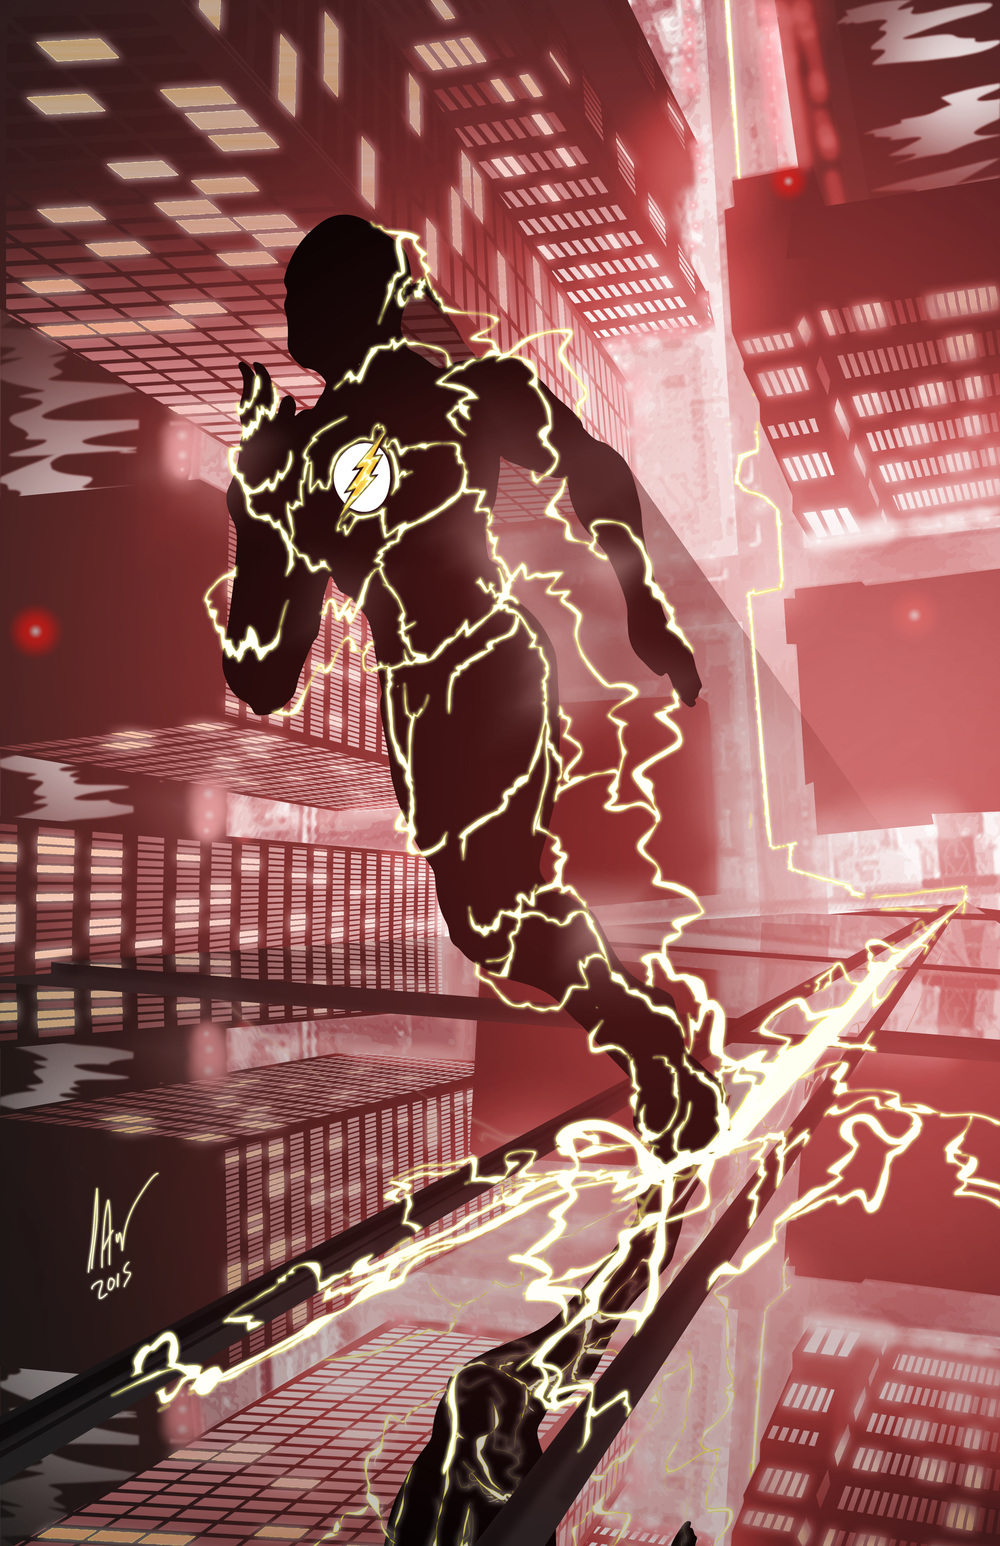 Flash-Faster than Darkness 11x17.jpg